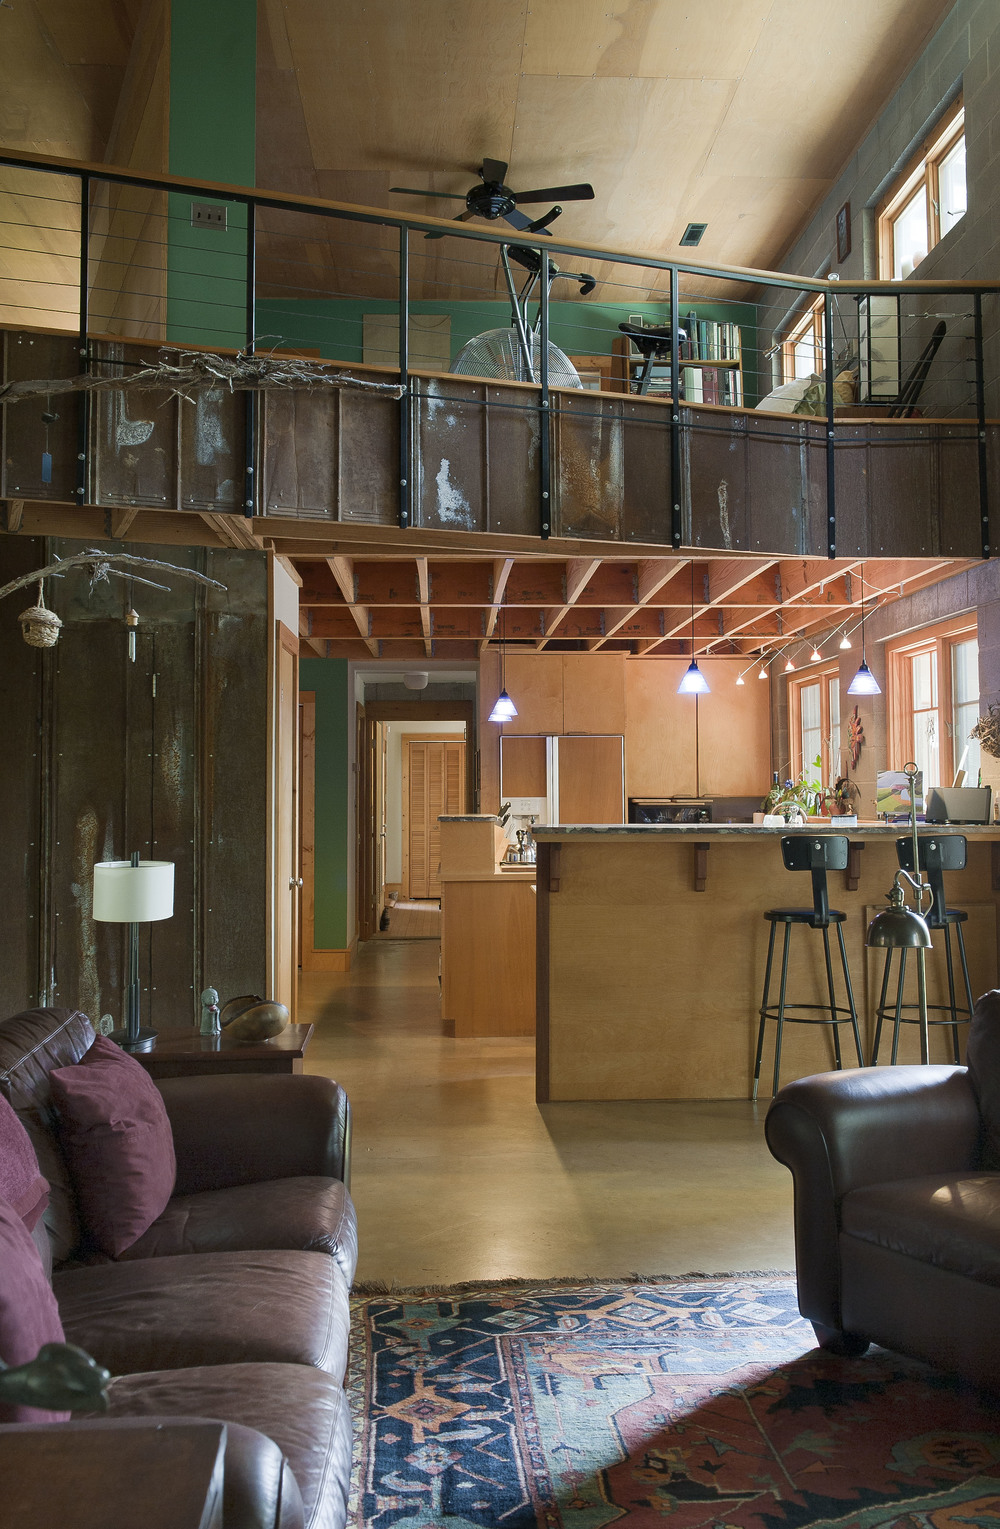 """The rustic master bedroom balcony and openness of the living and kitchen areas enhances the """"loft"""" design."""